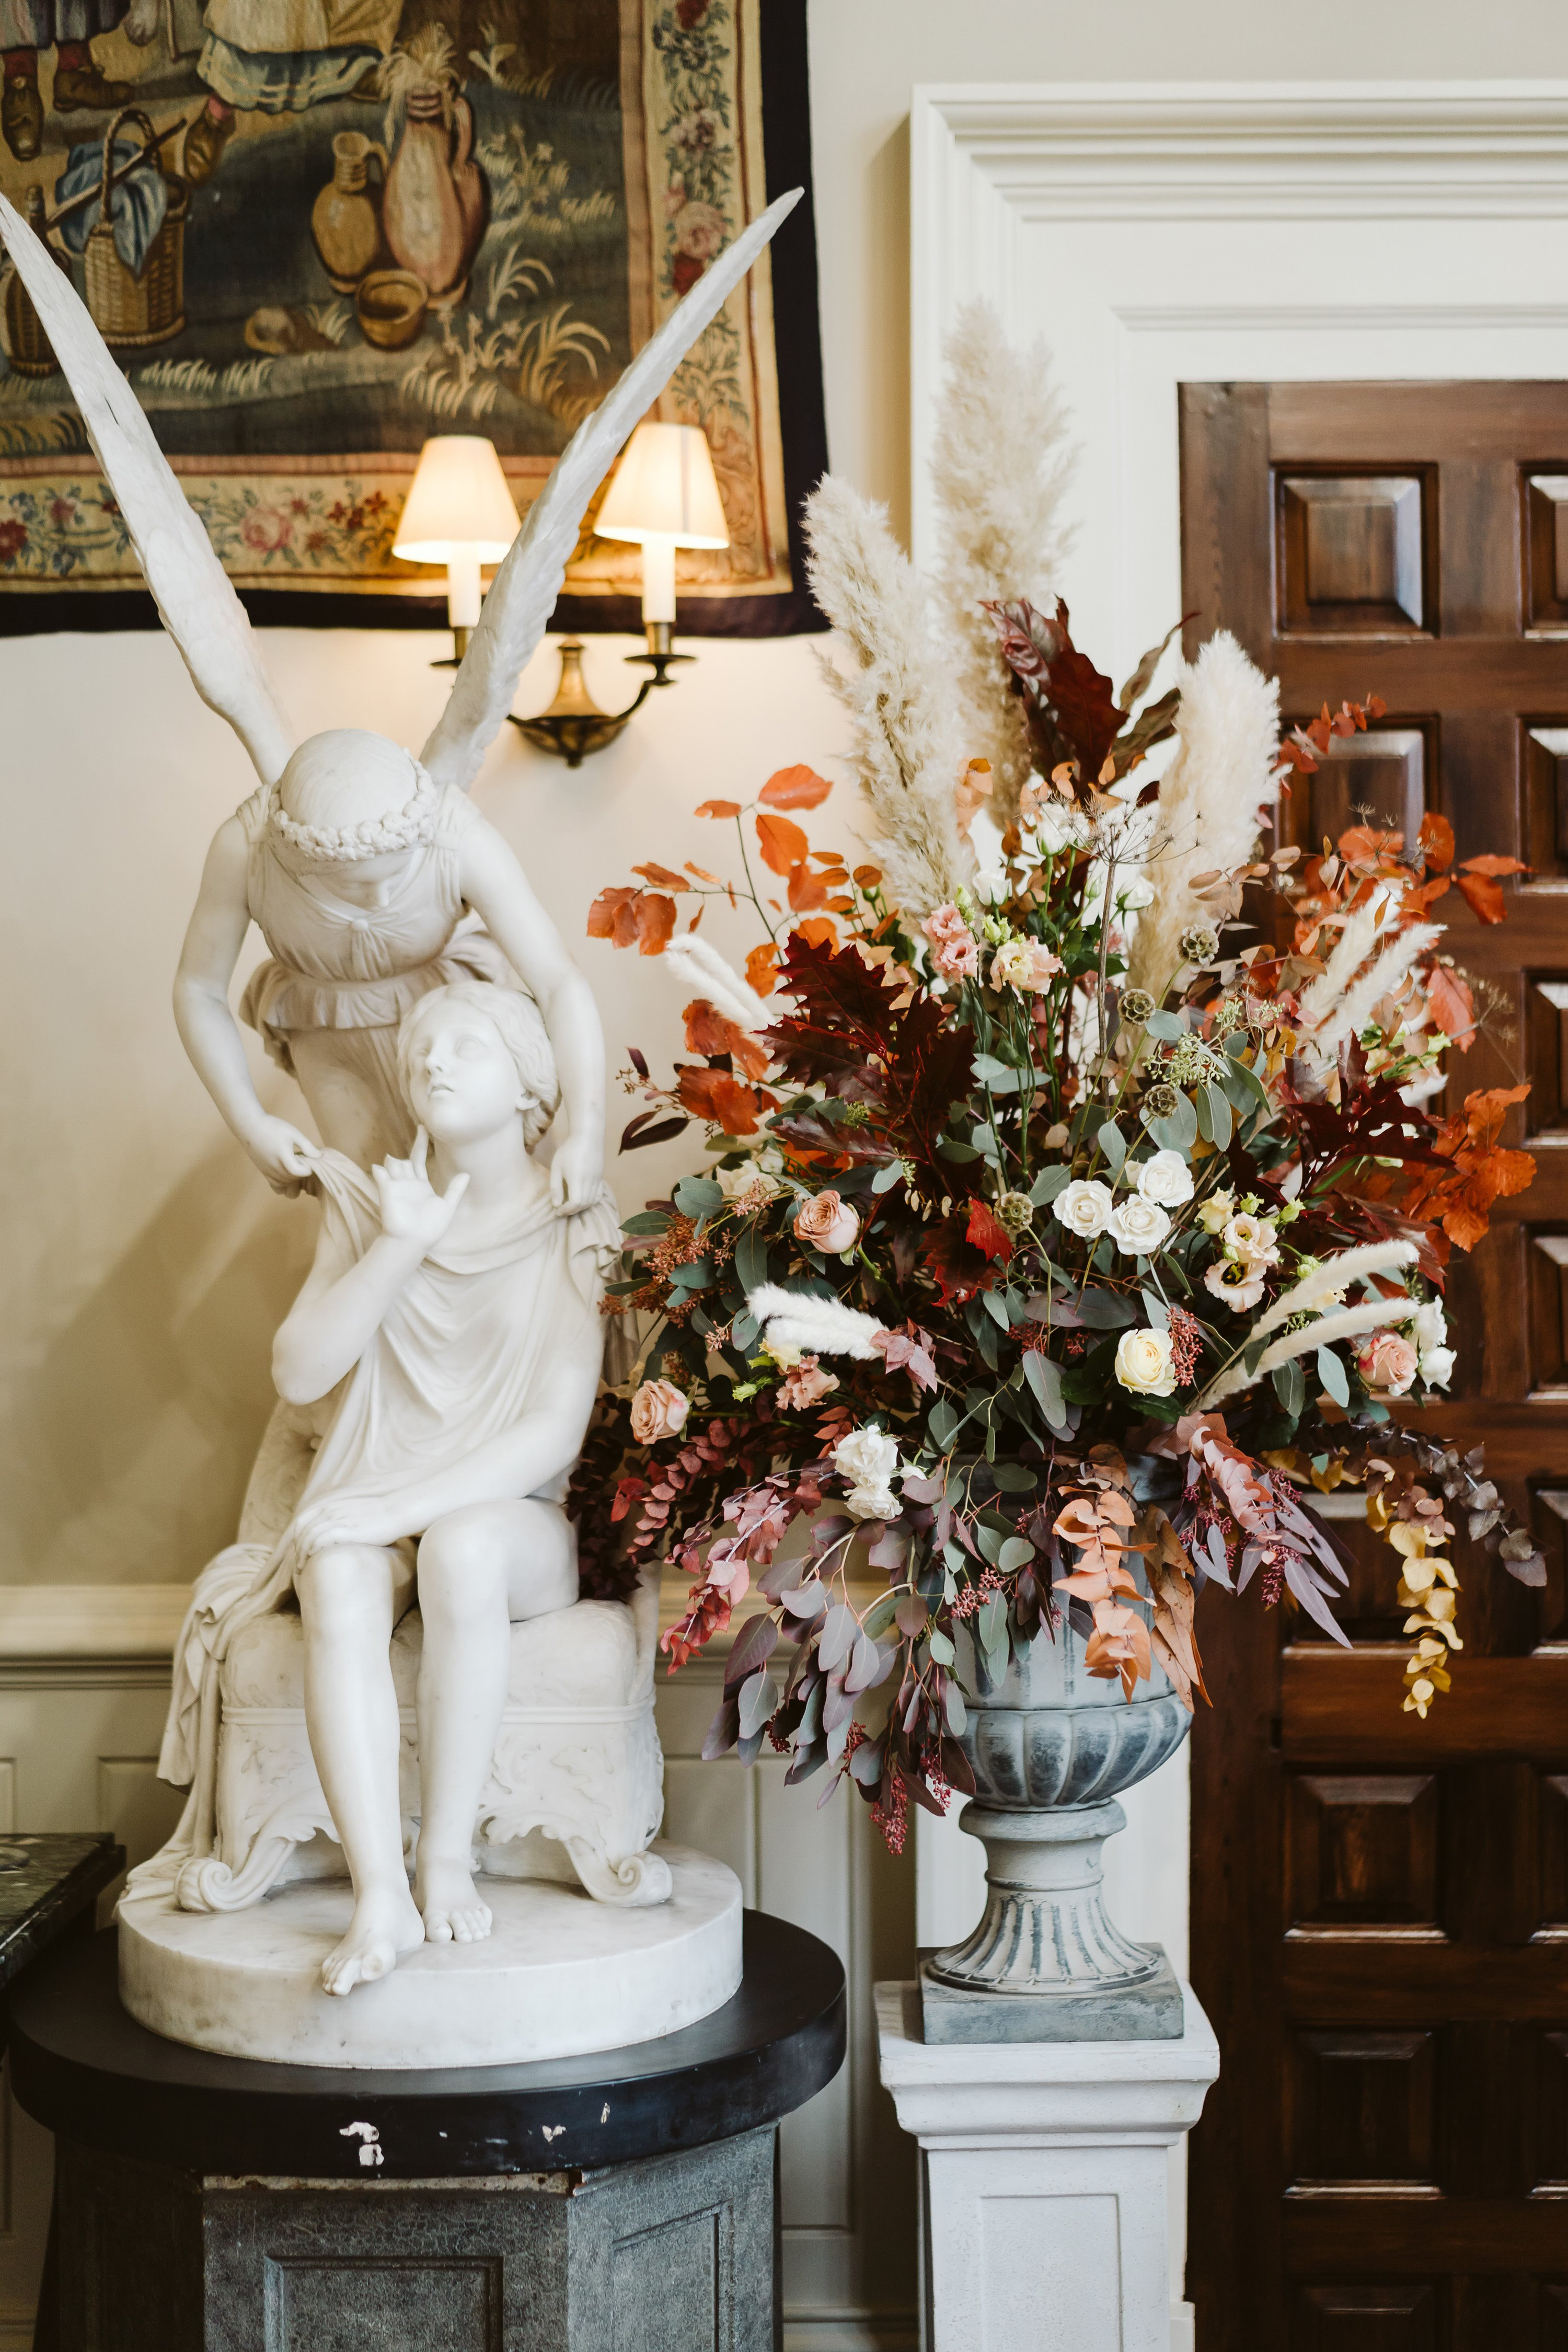 Autumn wedding at Elmore court with beautiful rustic floral arrangement in reds and oranges next to angel statue in the hall